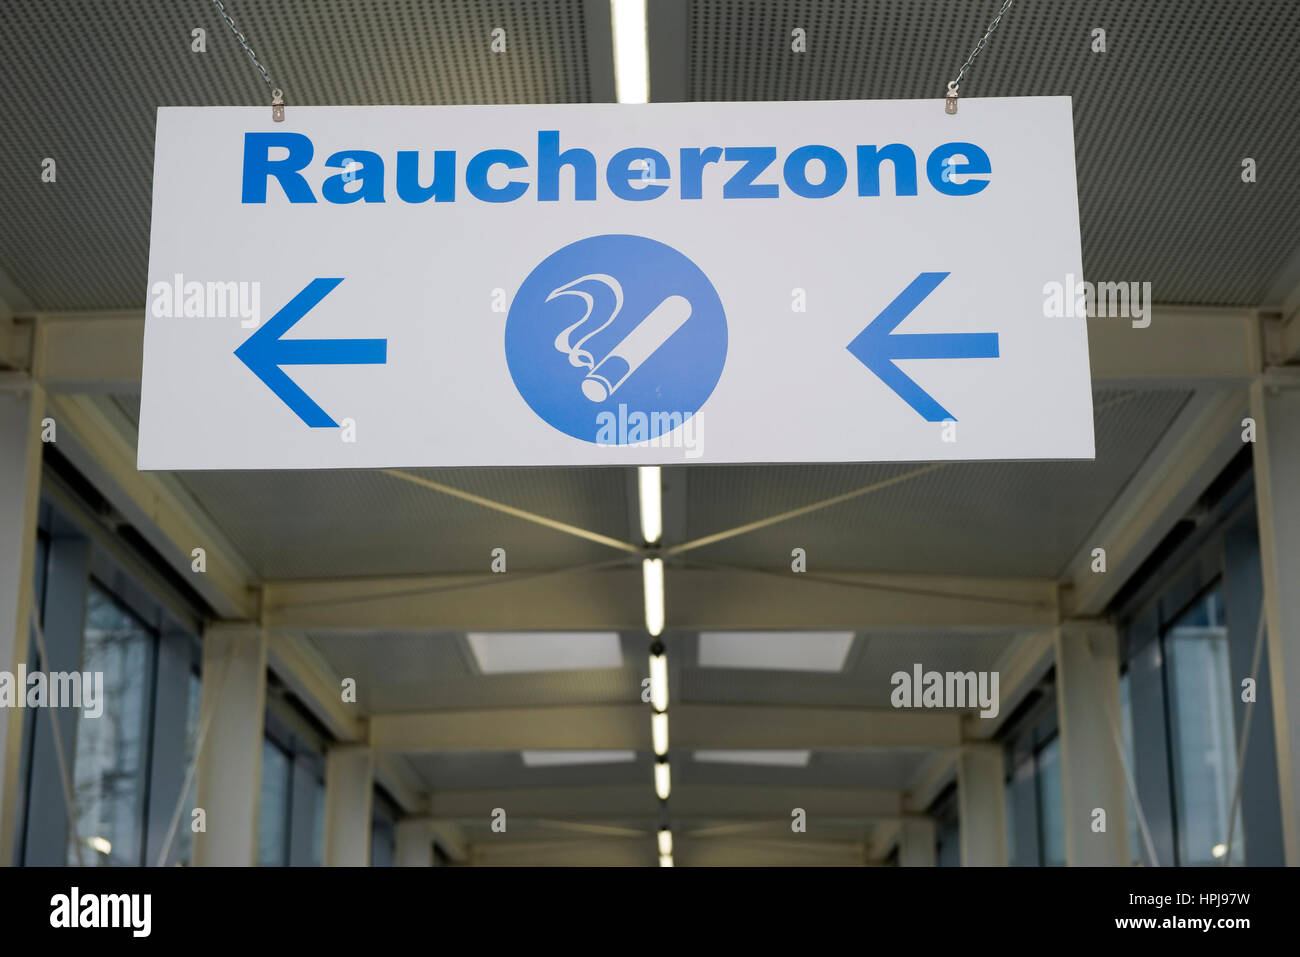 Magnificent Raucherzone Collection Of Schild - Shield For Smoking Area -